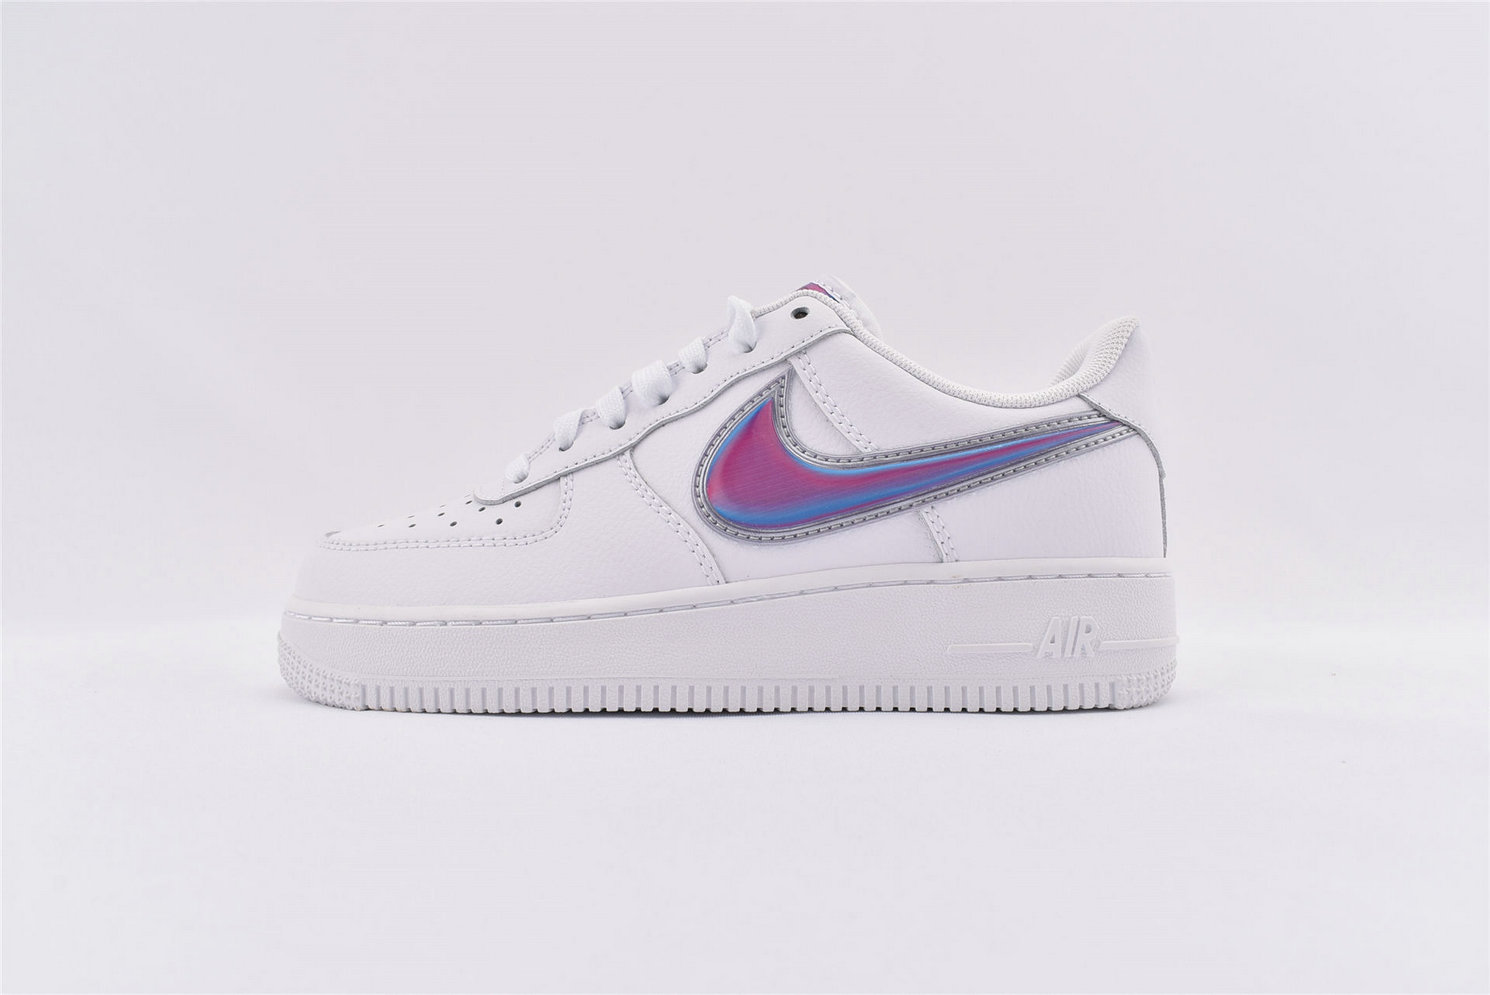 Where To Buy Wholesale Cheap Womens Nike Air Force 1 Low Oversized Swoosh White Racer Blue AO2441-101 - www.wholesaleflyknit.com